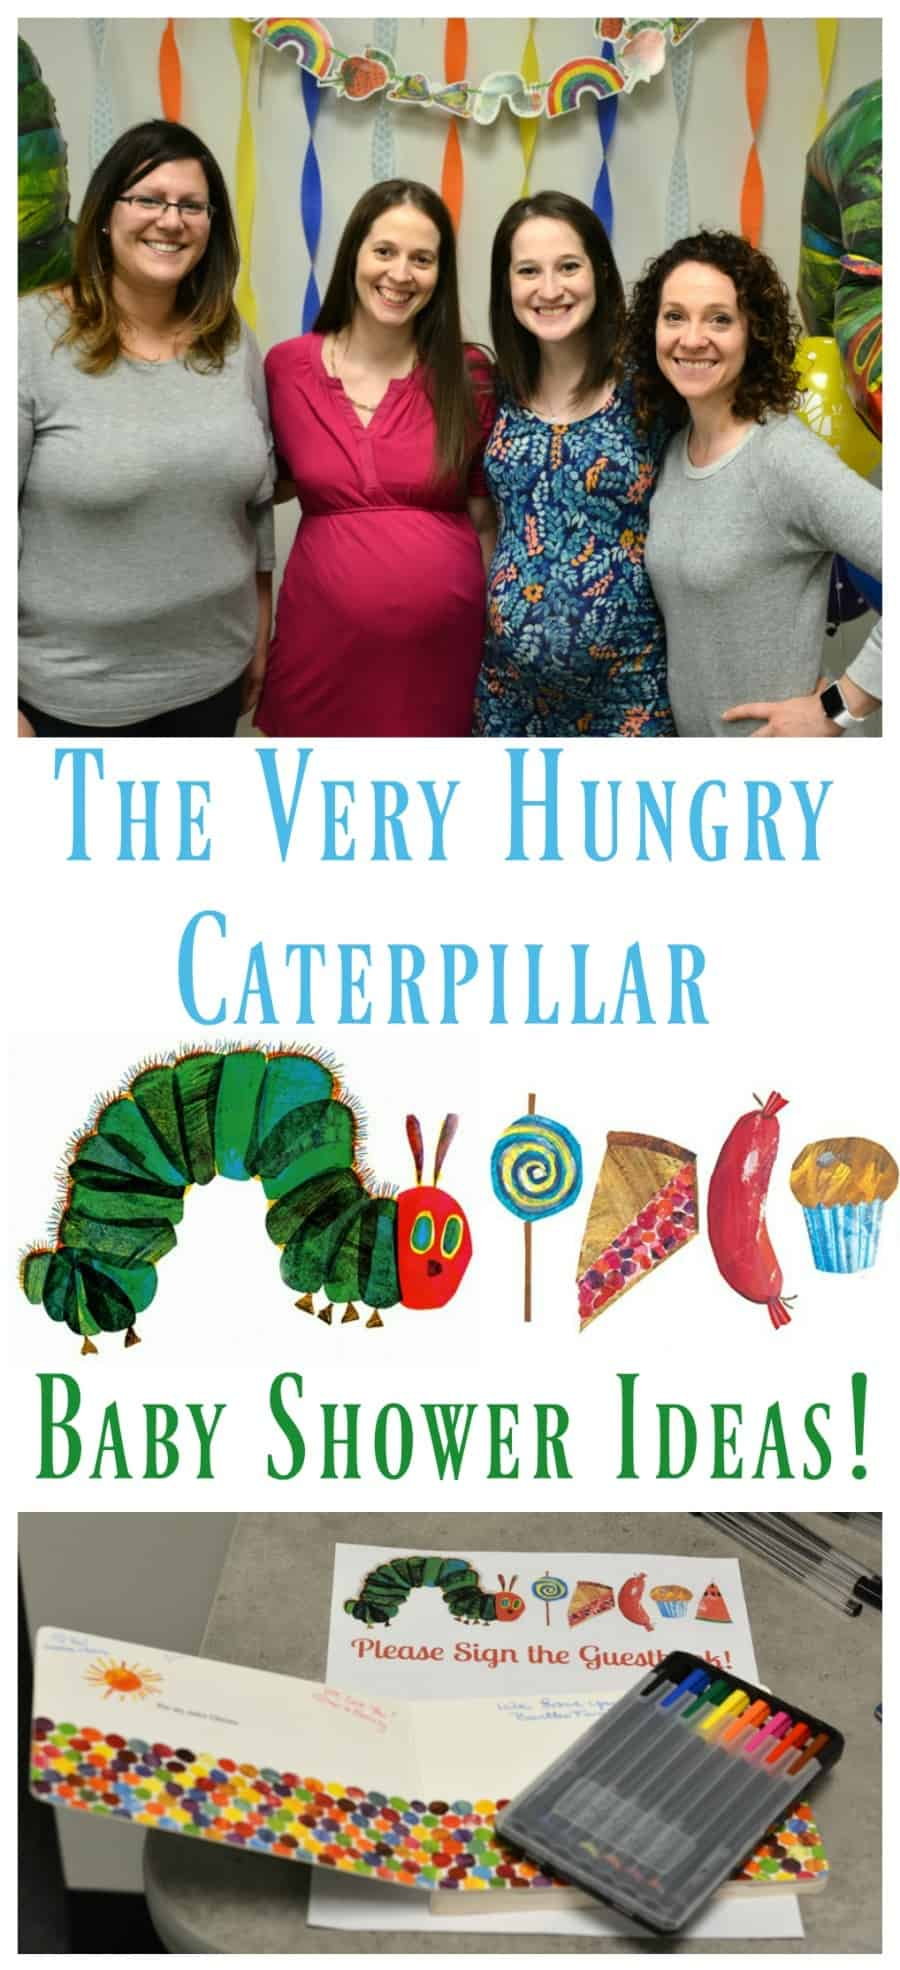 The Very Hungry Caterpillar Baby Shower Ideas